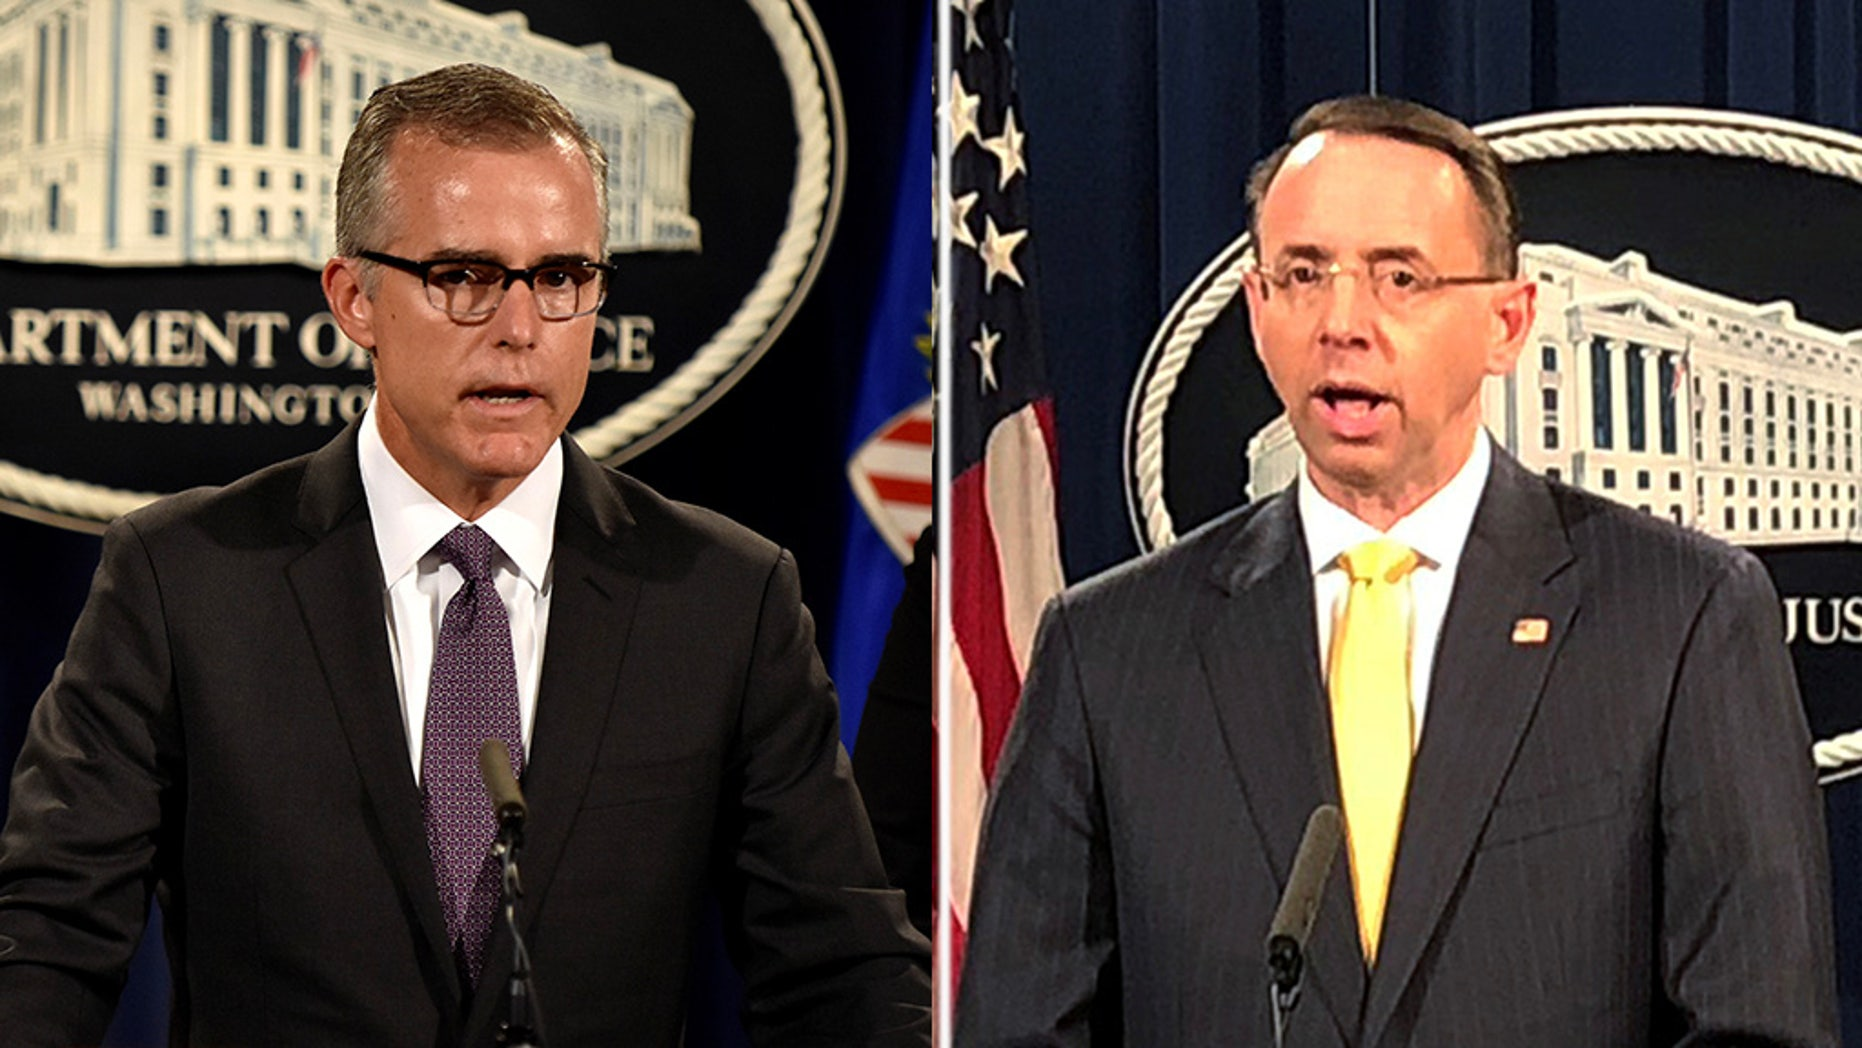 McCABE DENIED: FBI Blocks Release of Disgraced Deputy's New Book